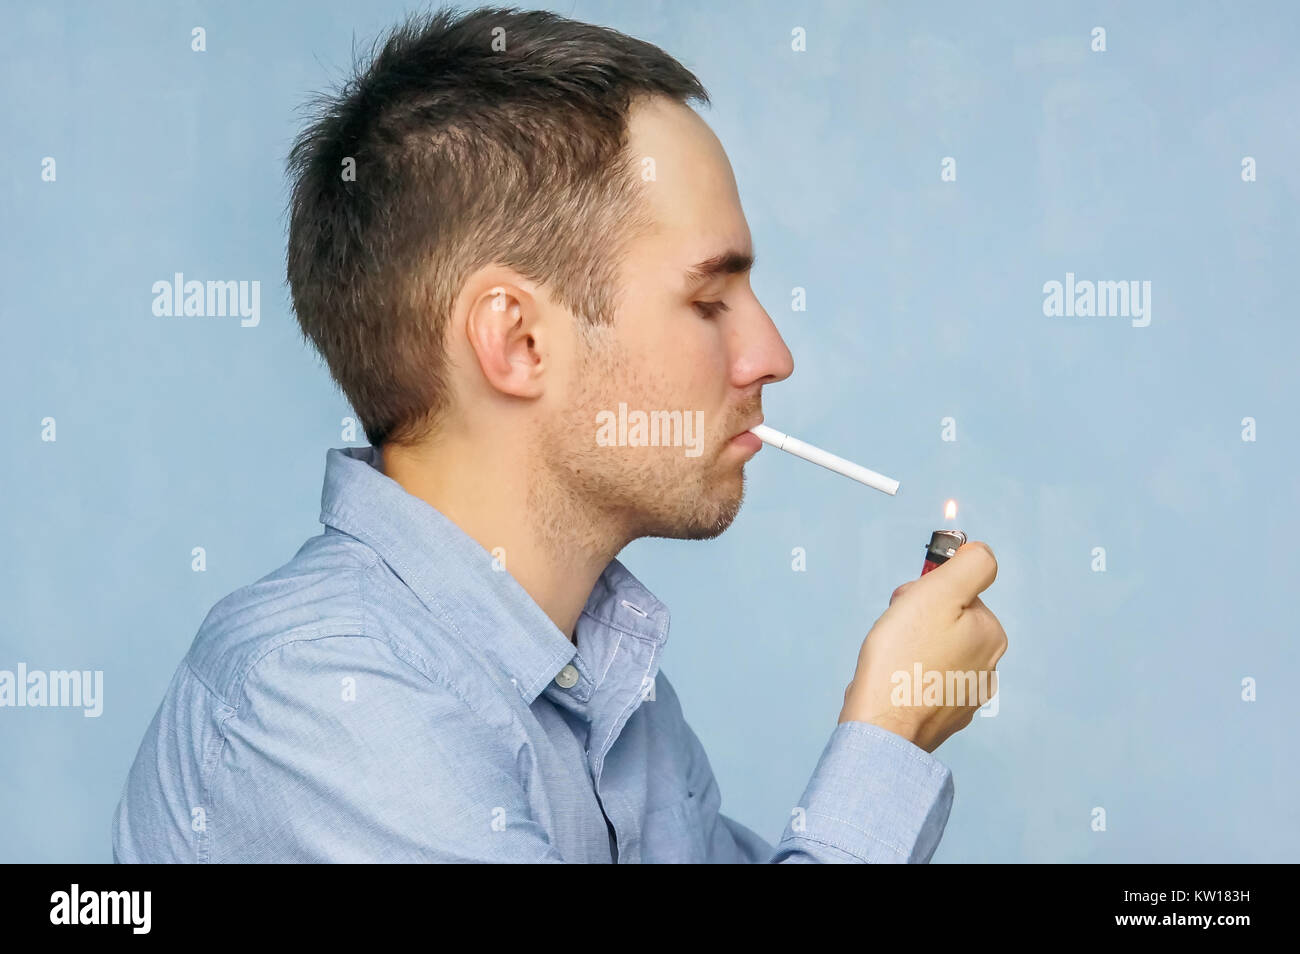 man smoking a cigarette. The guy in the blue shirt lights up from the fire - Stock Image